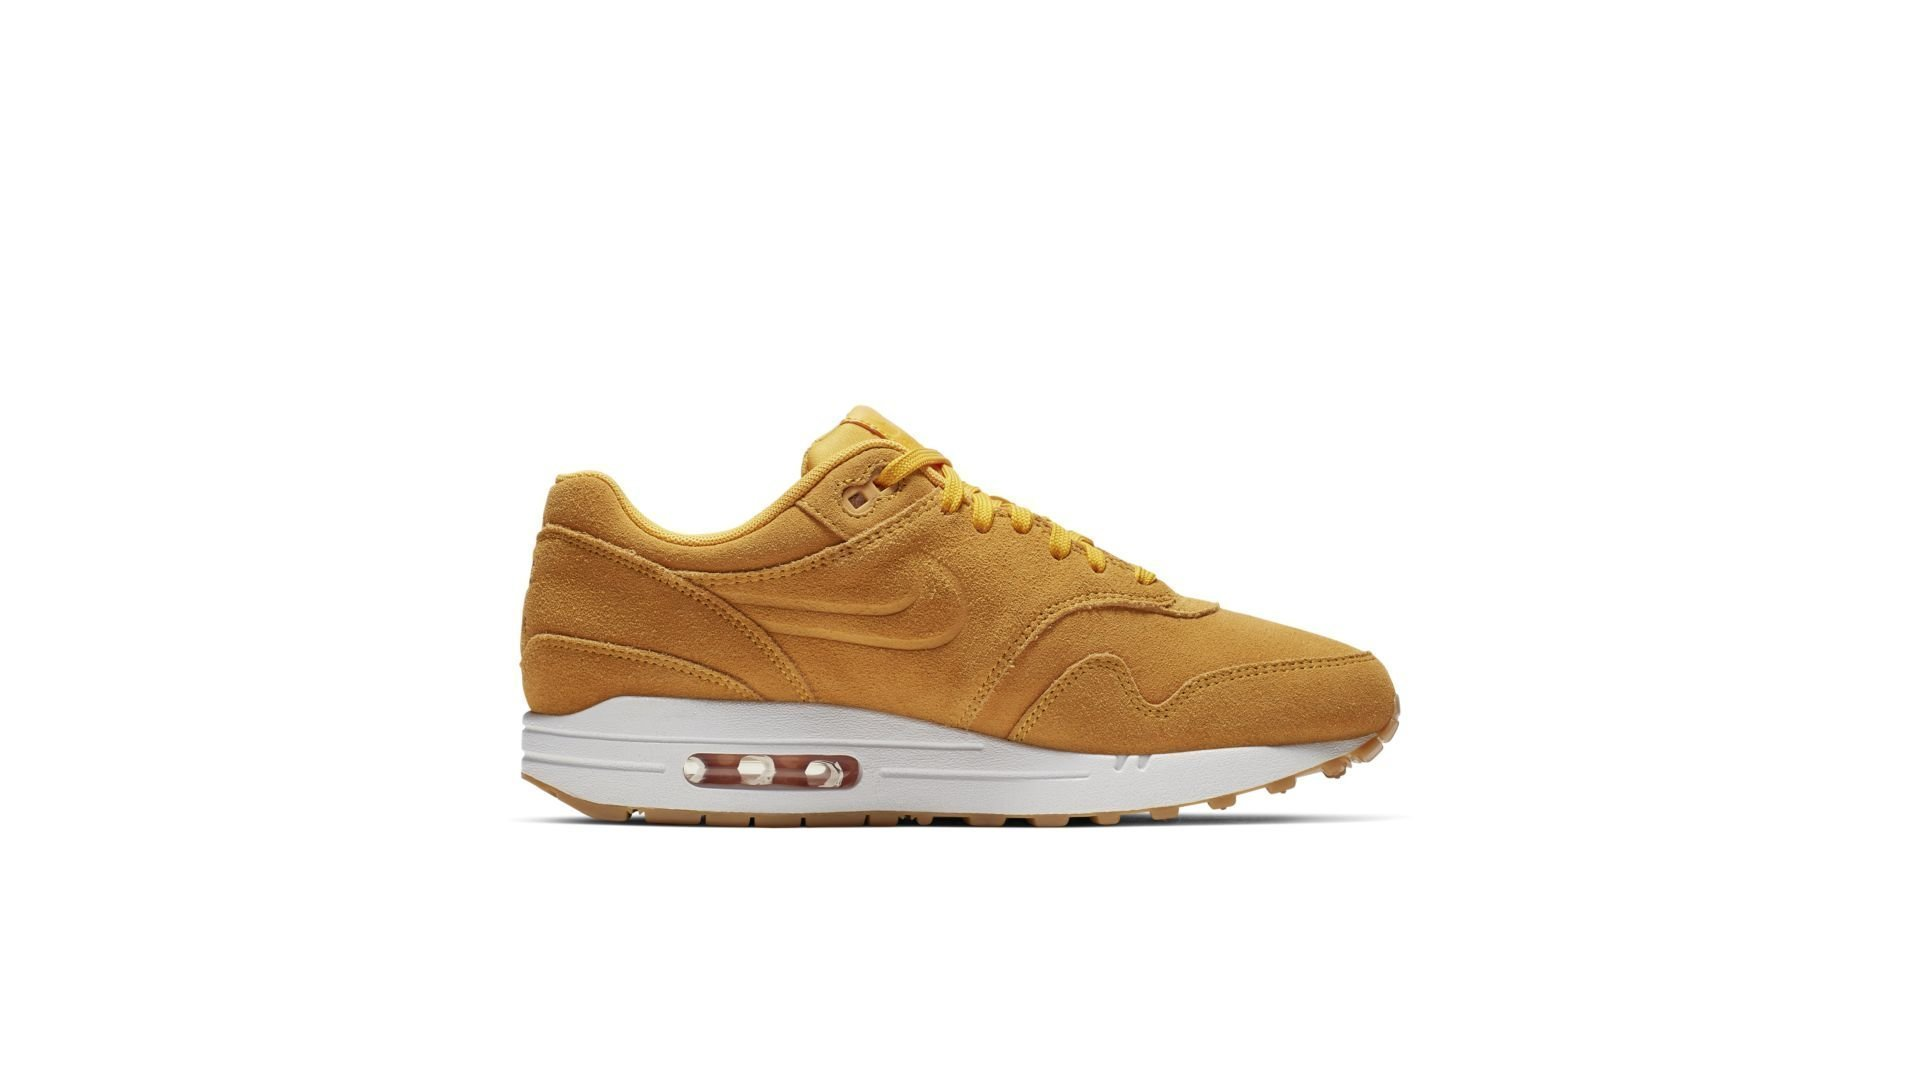 Nike WMNS Air Max 1 Premium 'Yellow' (454746-702)